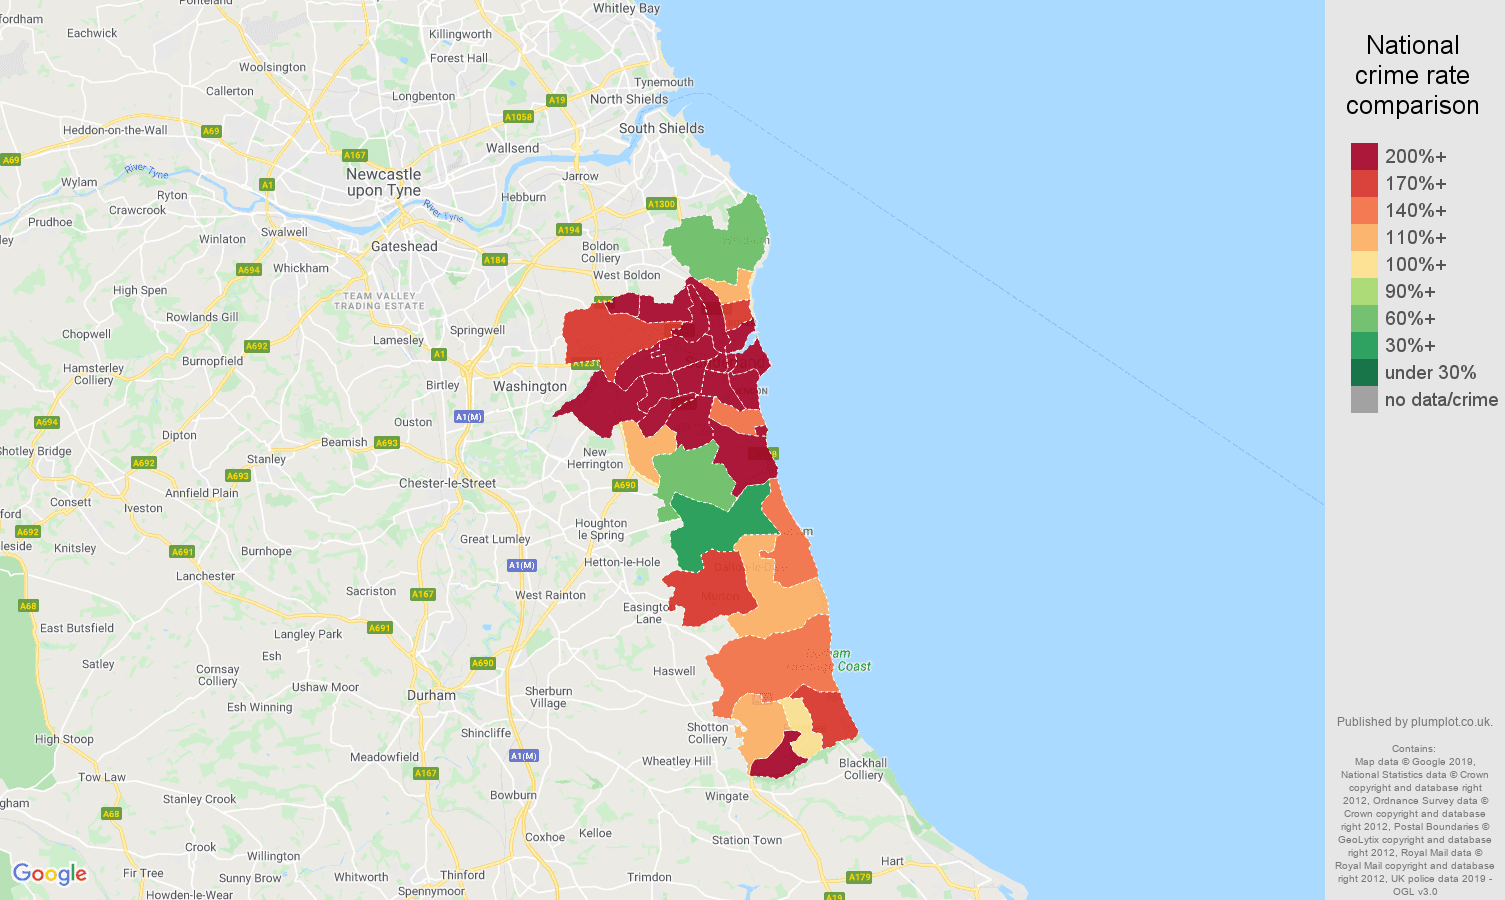 Sunderland public order crime rate comparison map